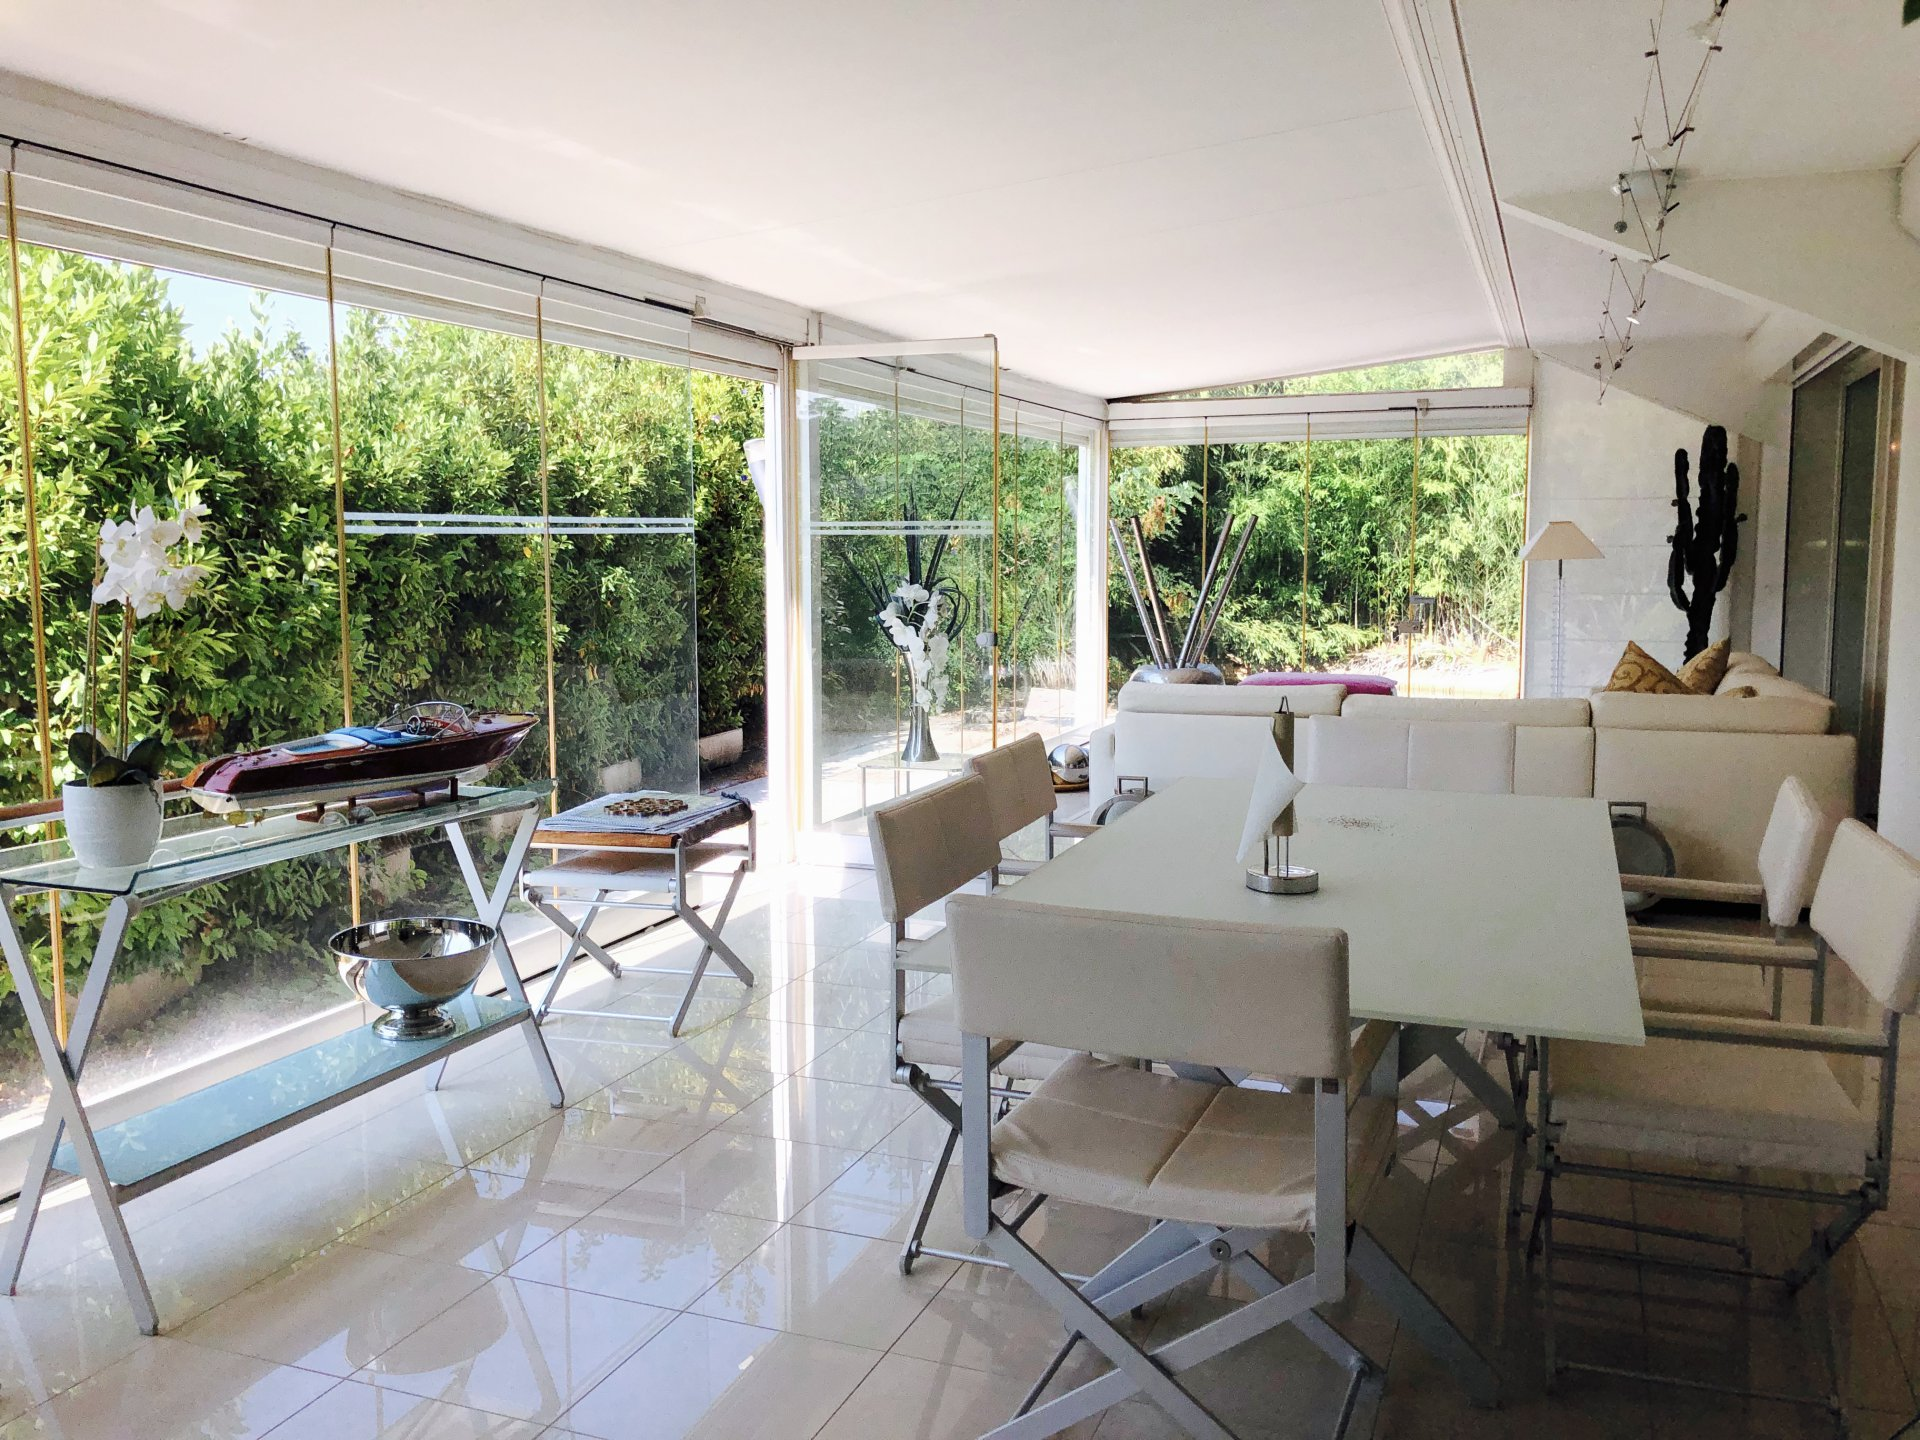 Cannes Montfleury, superbe 4P 140m2 en rdj, cave, parking et garage